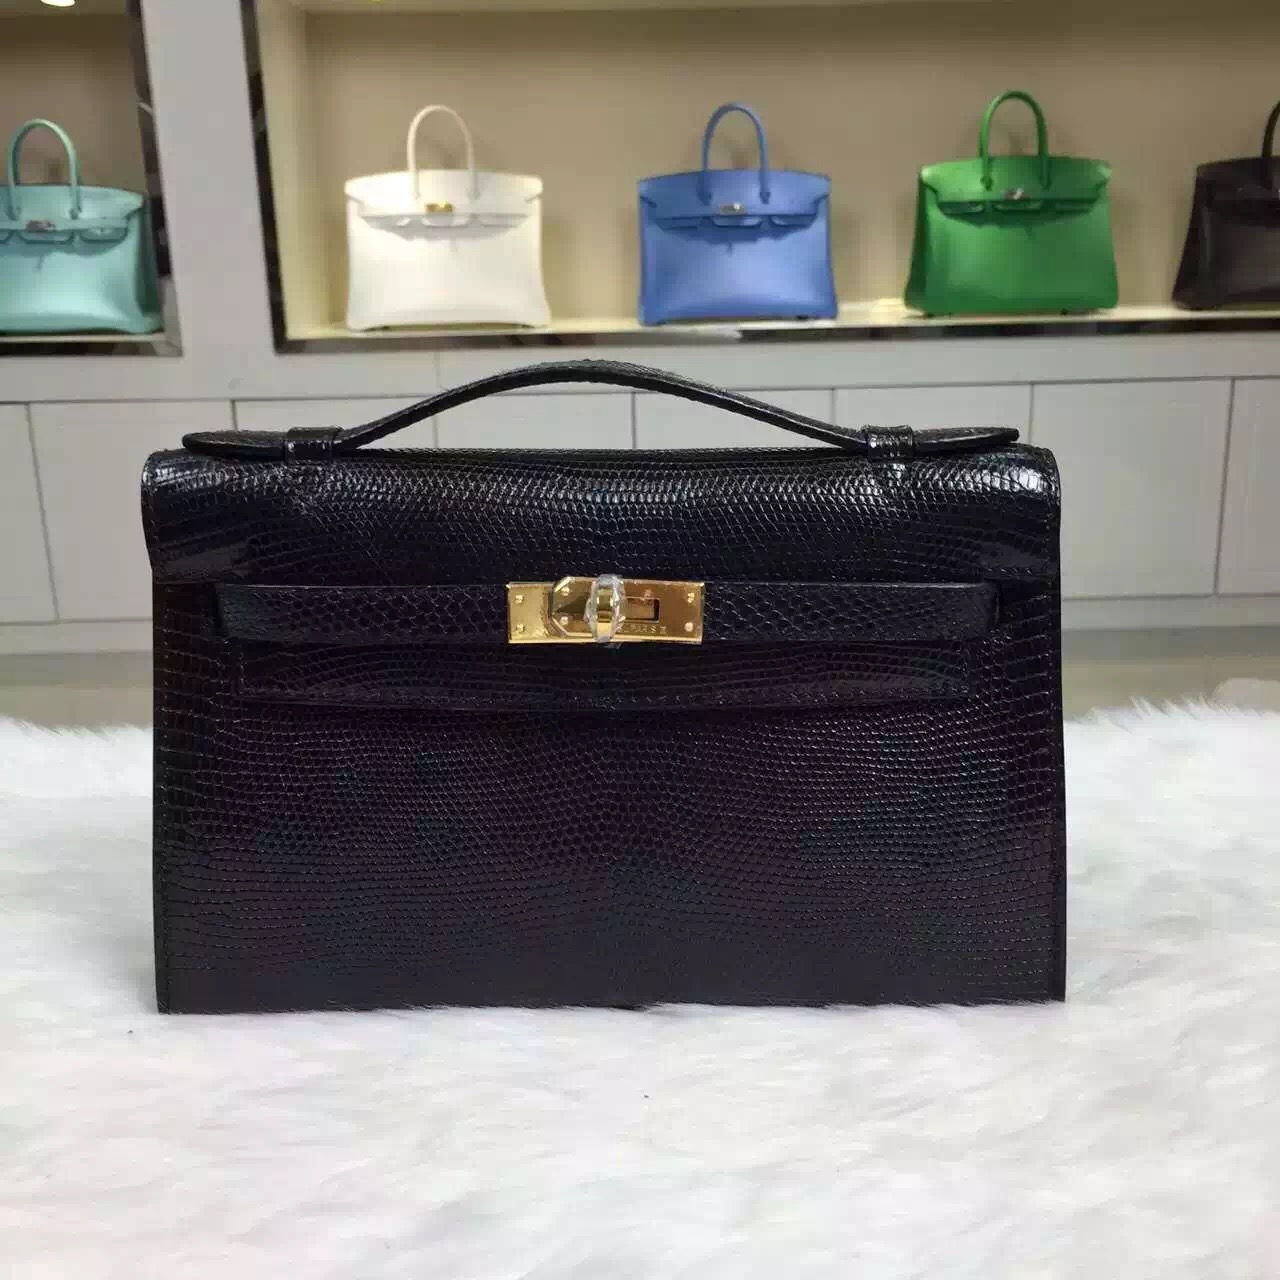 Discount Hermes Mini Kelly Pochette Black Lizard Skin Leather 22CM Gold Hardware